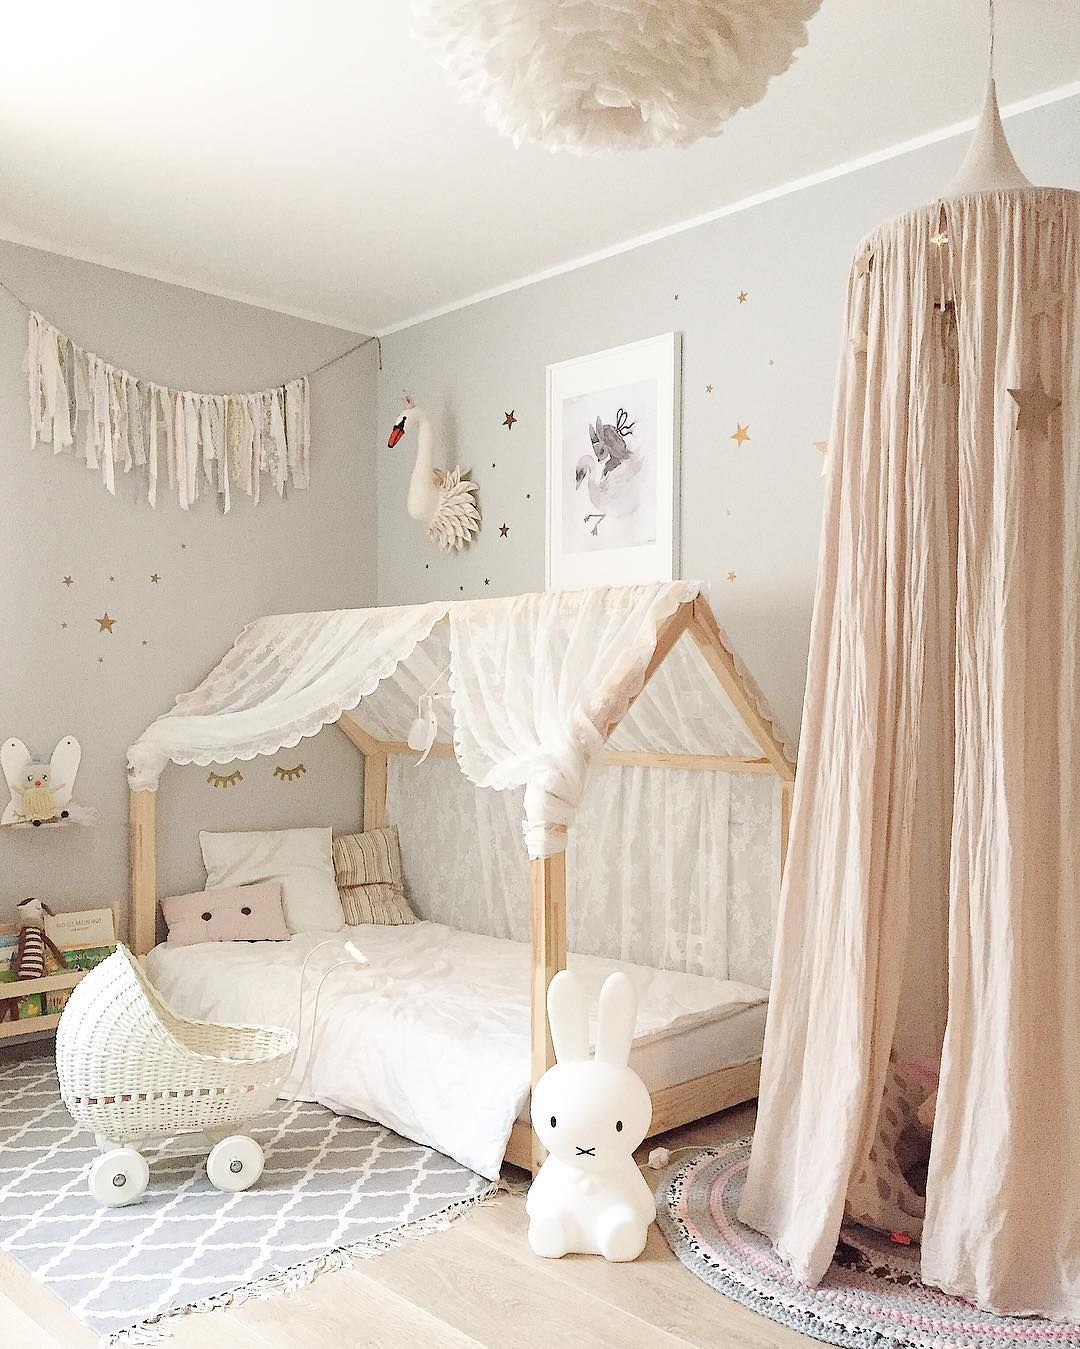 Post By 3elfenkinder On Instagram Vibbi Deco Chambre Enfant